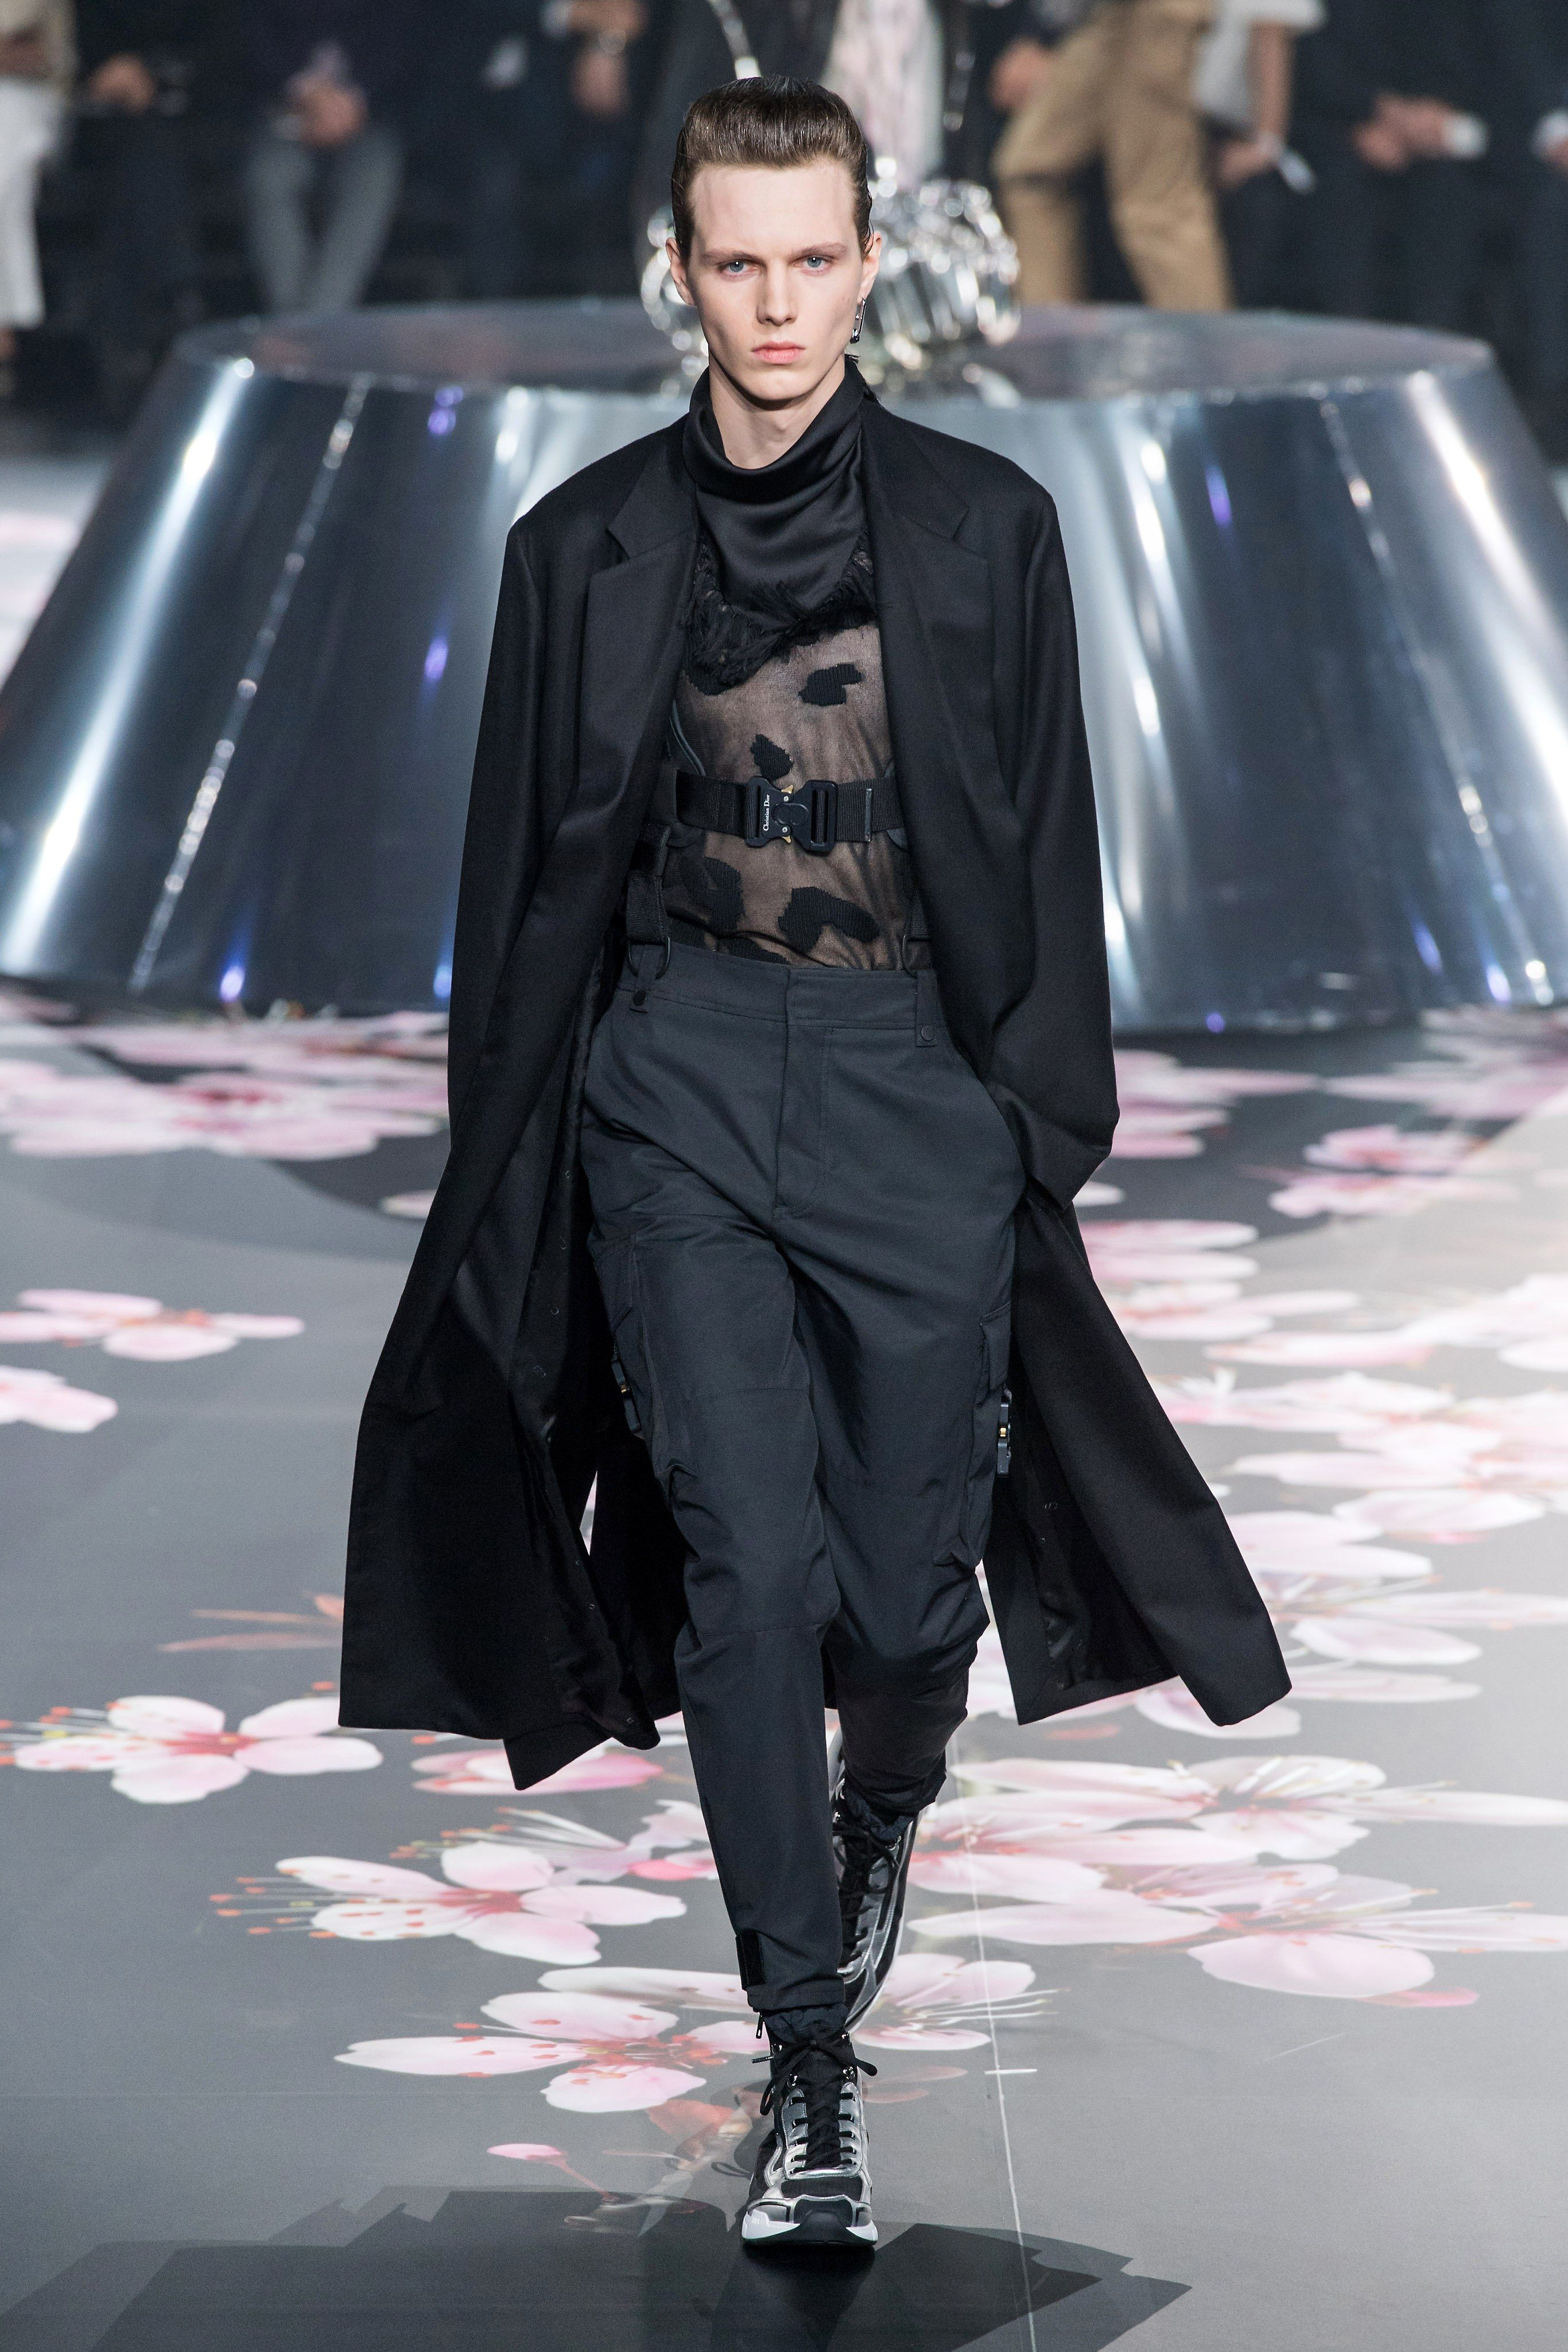 bfd91174fd100 In Fashion Mens Clothes. Dior Men Pre-Fall 2019 Collection - Vogue